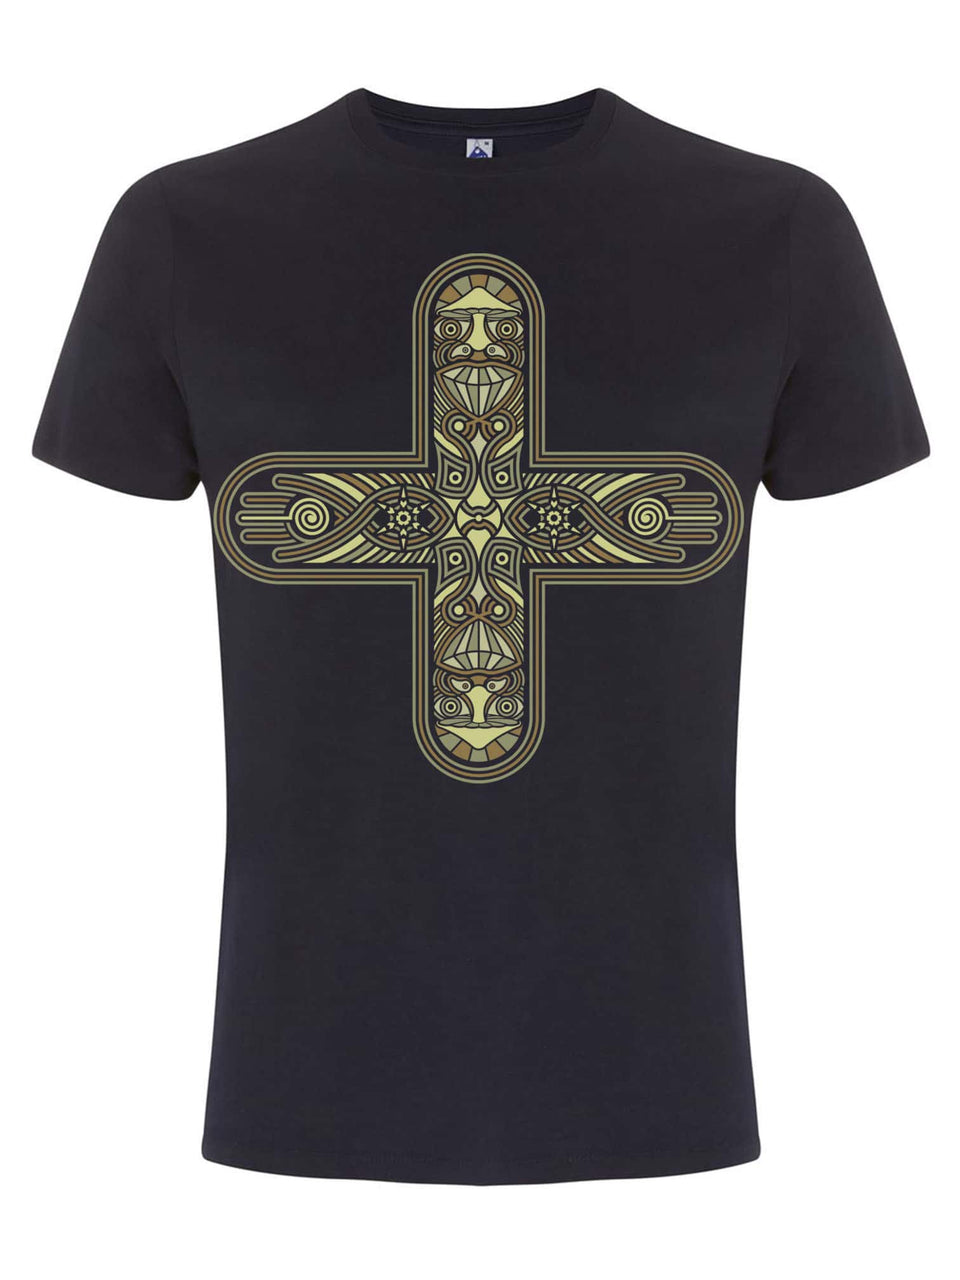 Decross Made To Order Men T-Shirt - Navy Blue